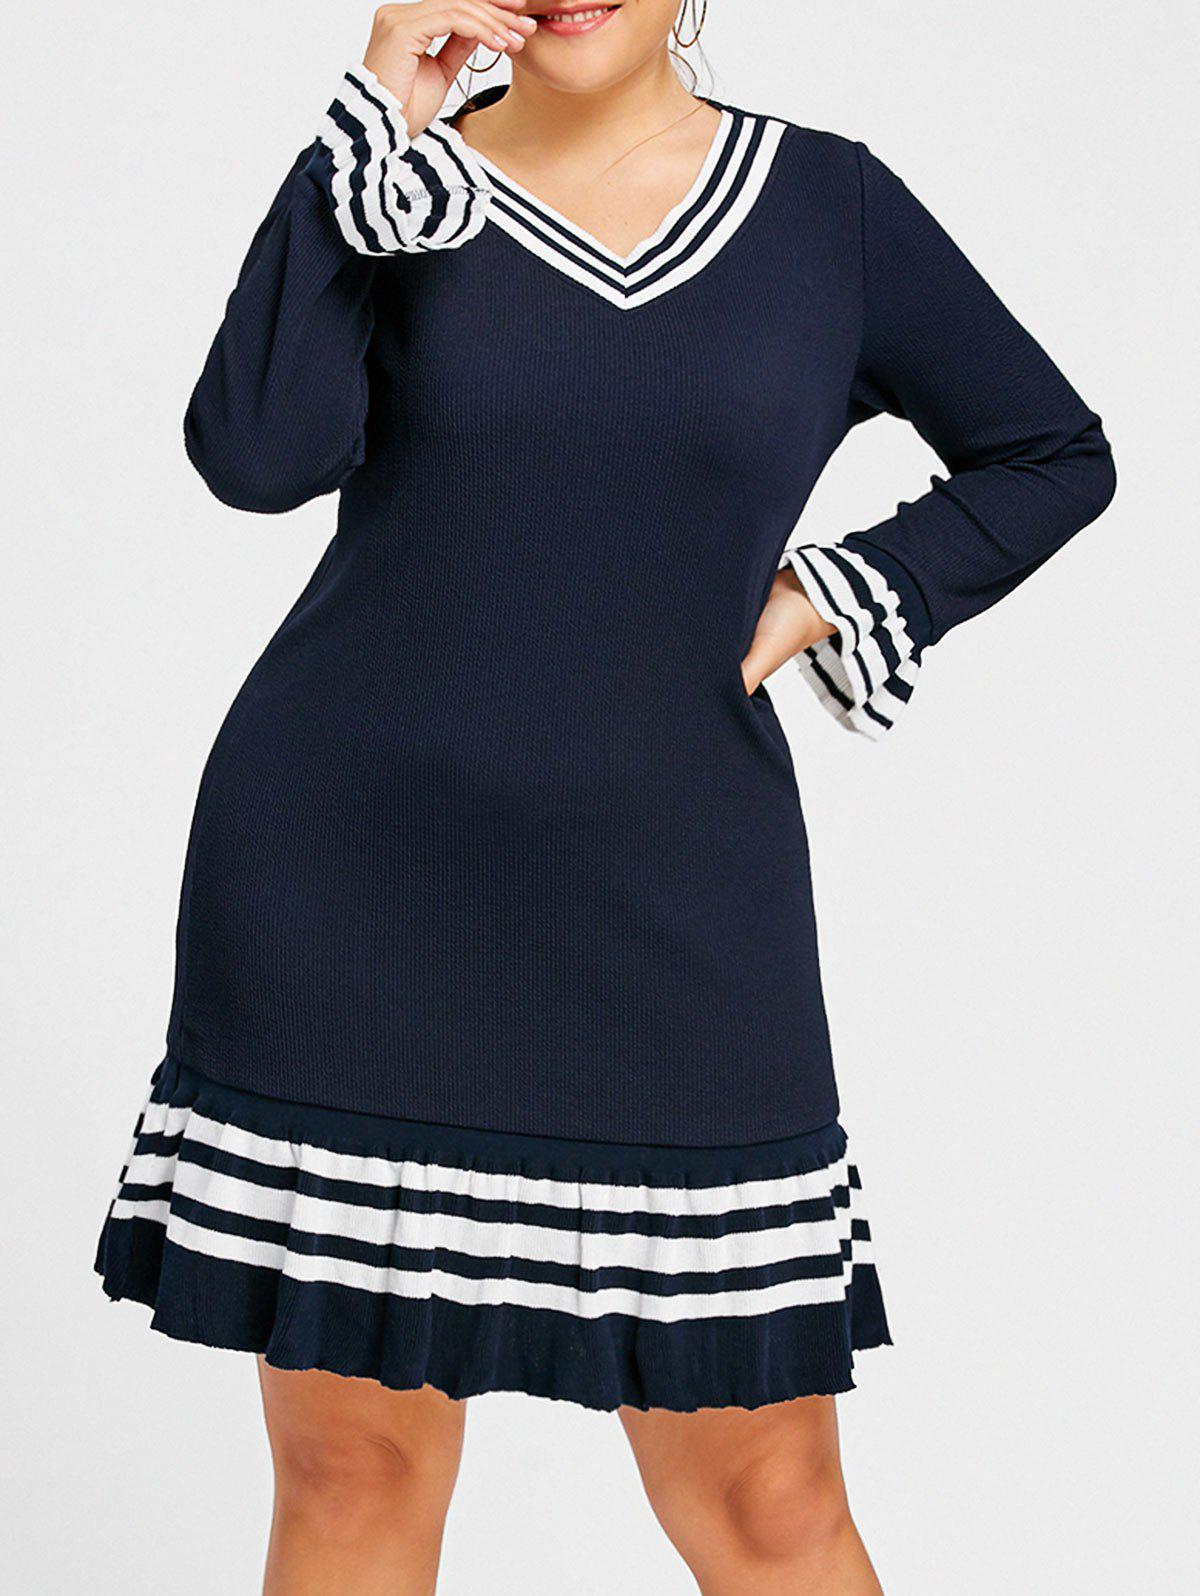 Plus Size Bell Sleeve Striped Sweater DressWOMEN<br><br>Size: 3XL; Color: PURPLISH BLUE; Style: Casual; Material: Acrylic; Silhouette: A-Line; Dresses Length: Knee-Length; Neckline: V-Neck; Sleeve Type: Flare Sleeve; Sleeve Length: Long Sleeves; Waist: Dropped; Pattern Type: Striped; With Belt: No; Season: Fall,Spring,Winter; Weight: 0.5800kg; Package Contents: 1 x Dress;